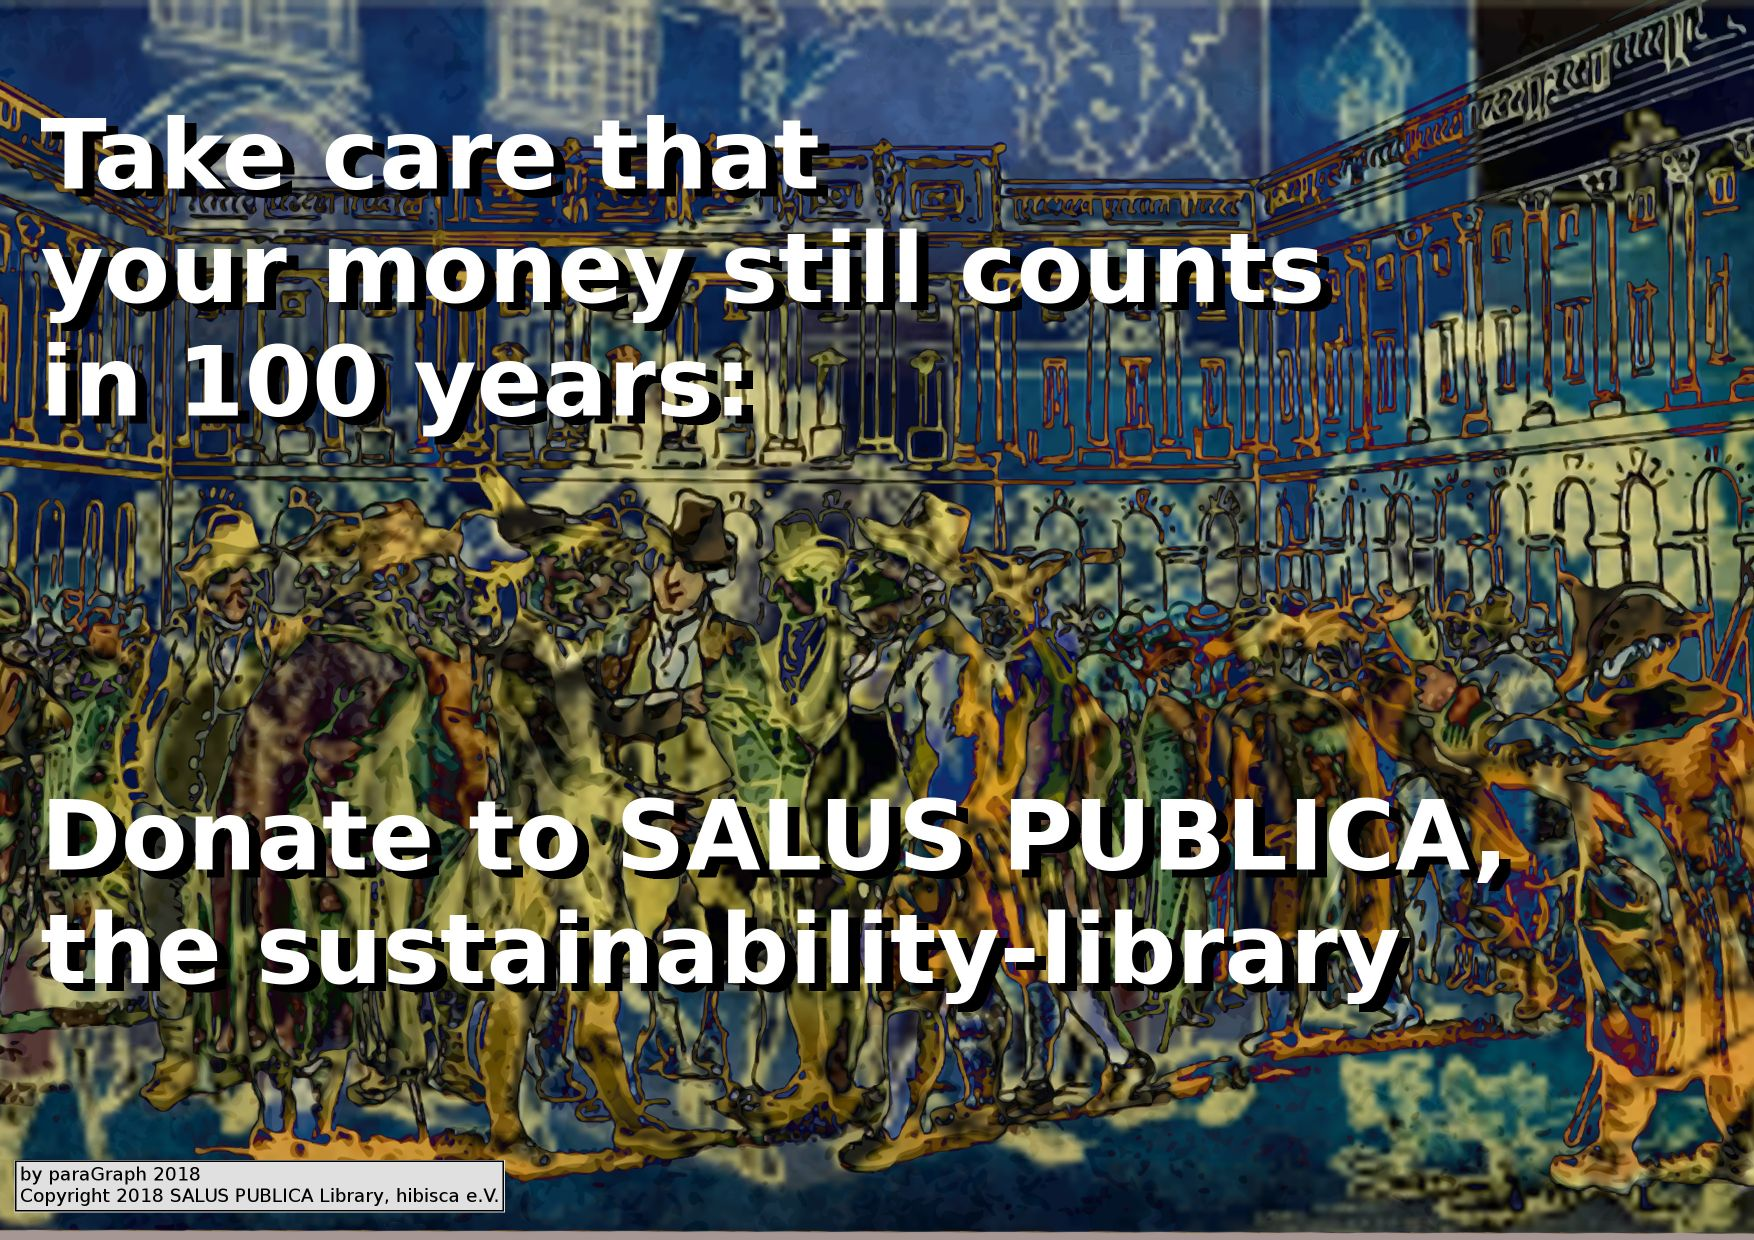 Fundraising illustration for the SALUS PUBLICA LIbrary, by paraGraph, Copyright 2018 SALUS PUBLICA Library, hibisca e.V.